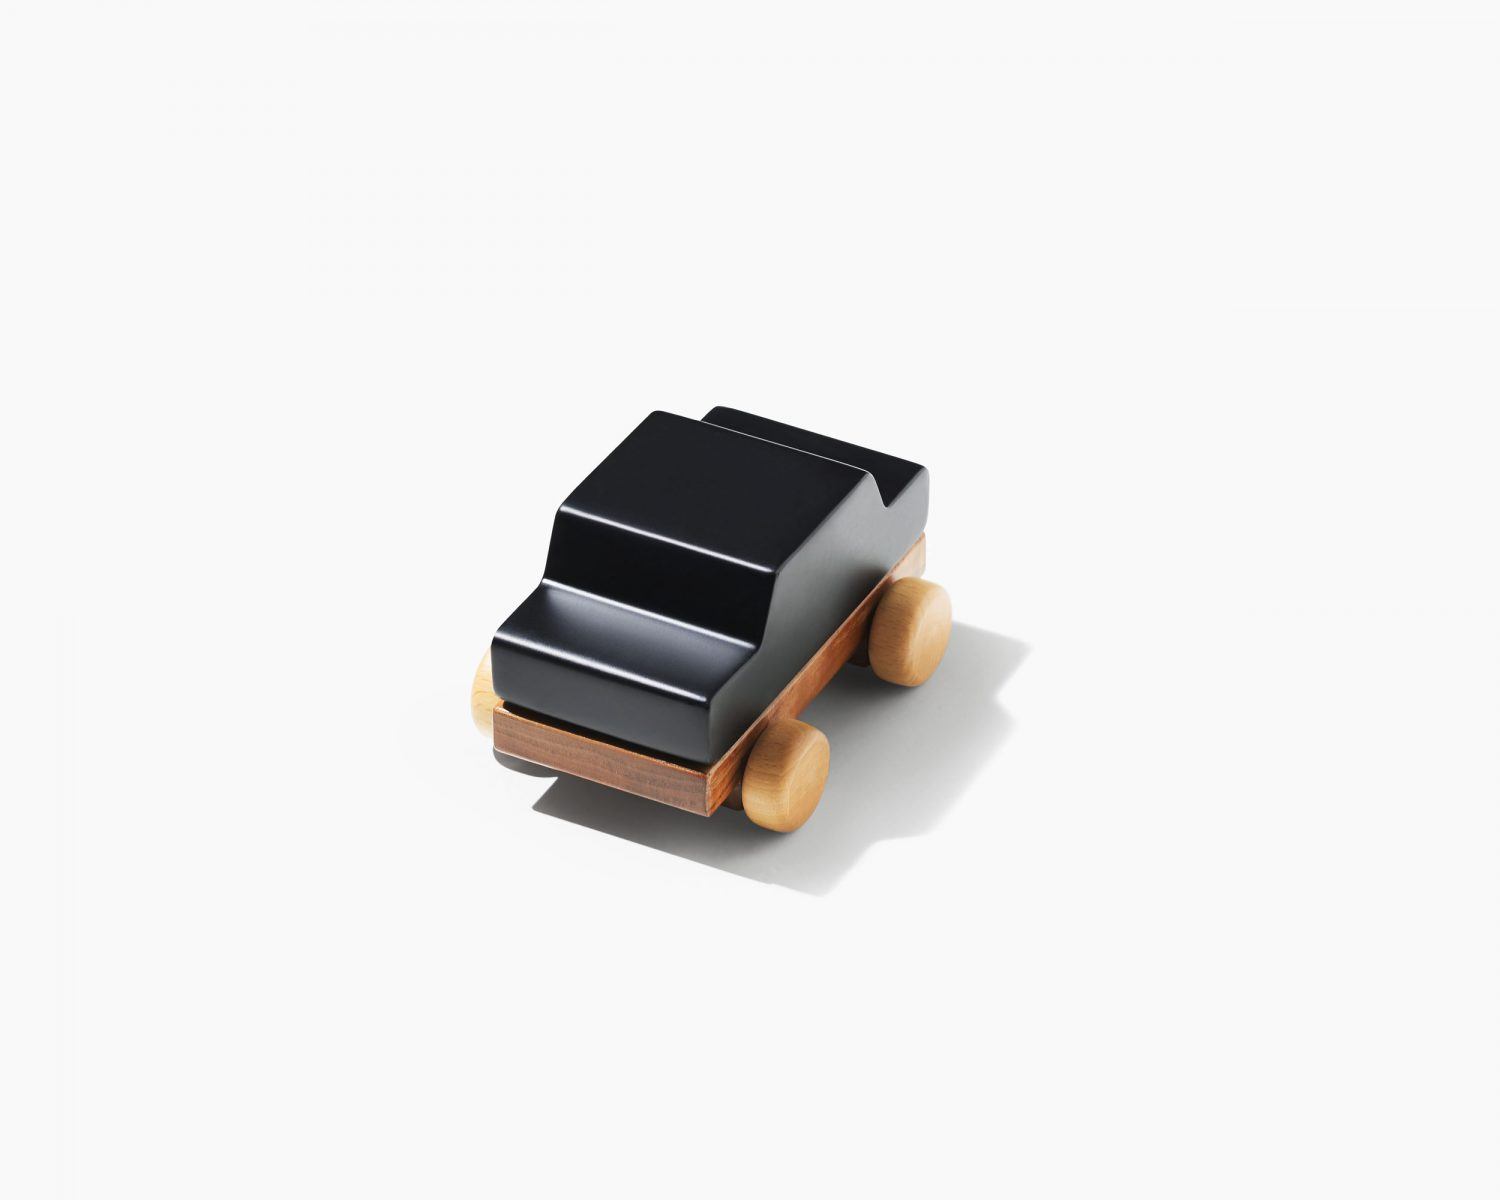 h1263s1_wooden_toy_car